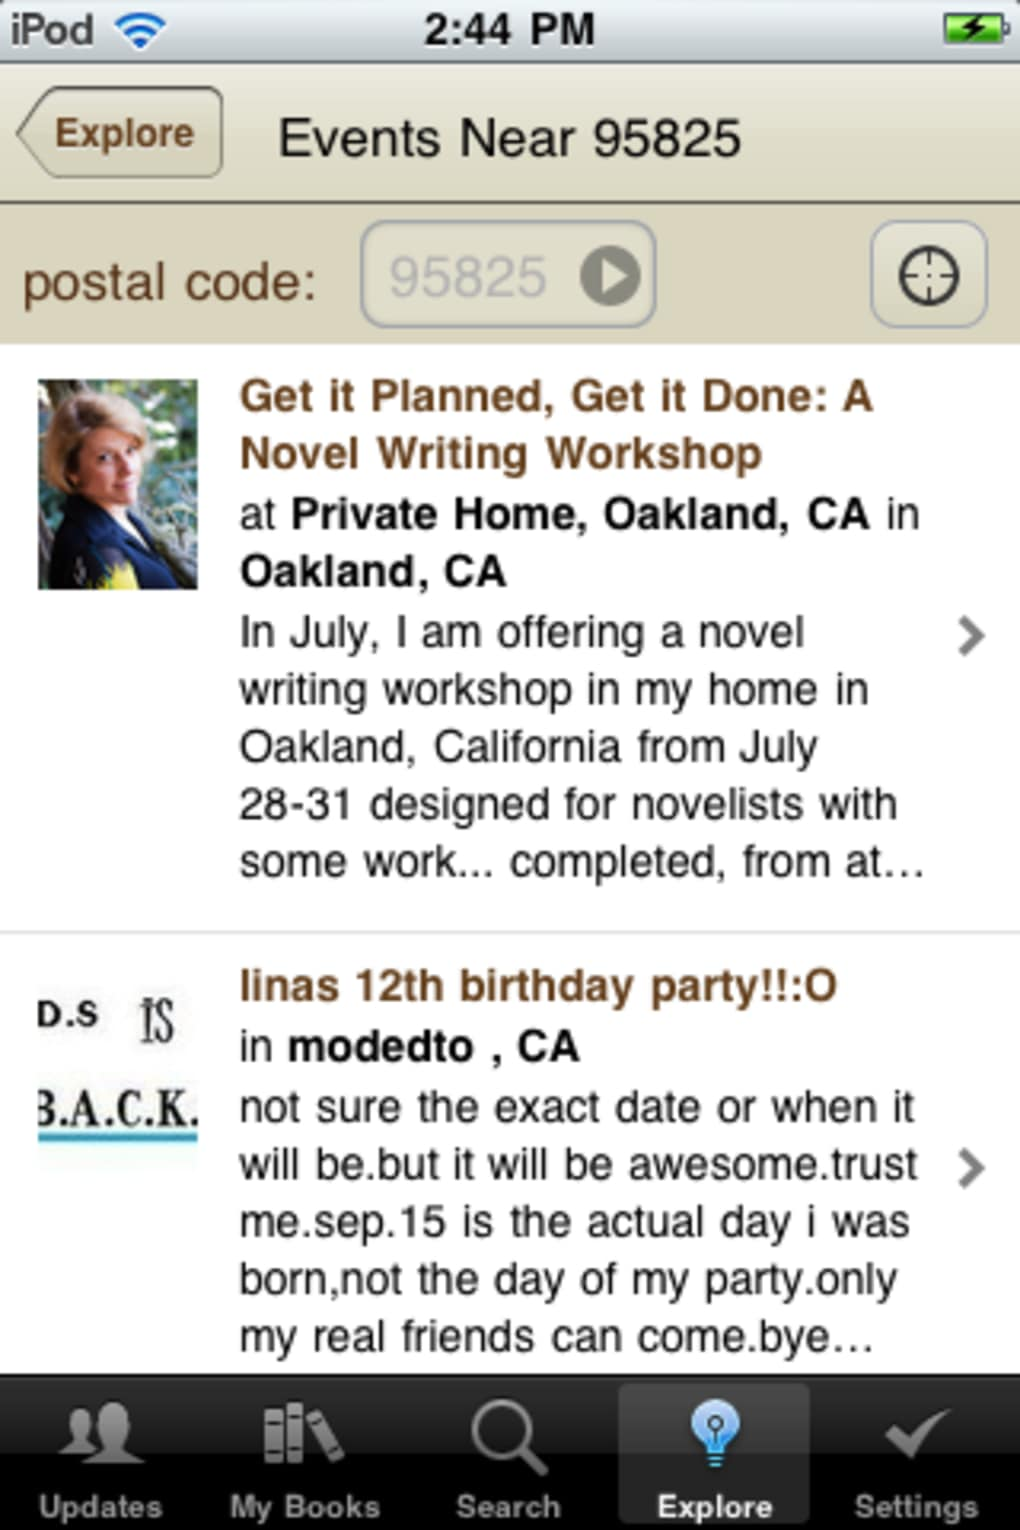 Goodreads for iPhone - Download